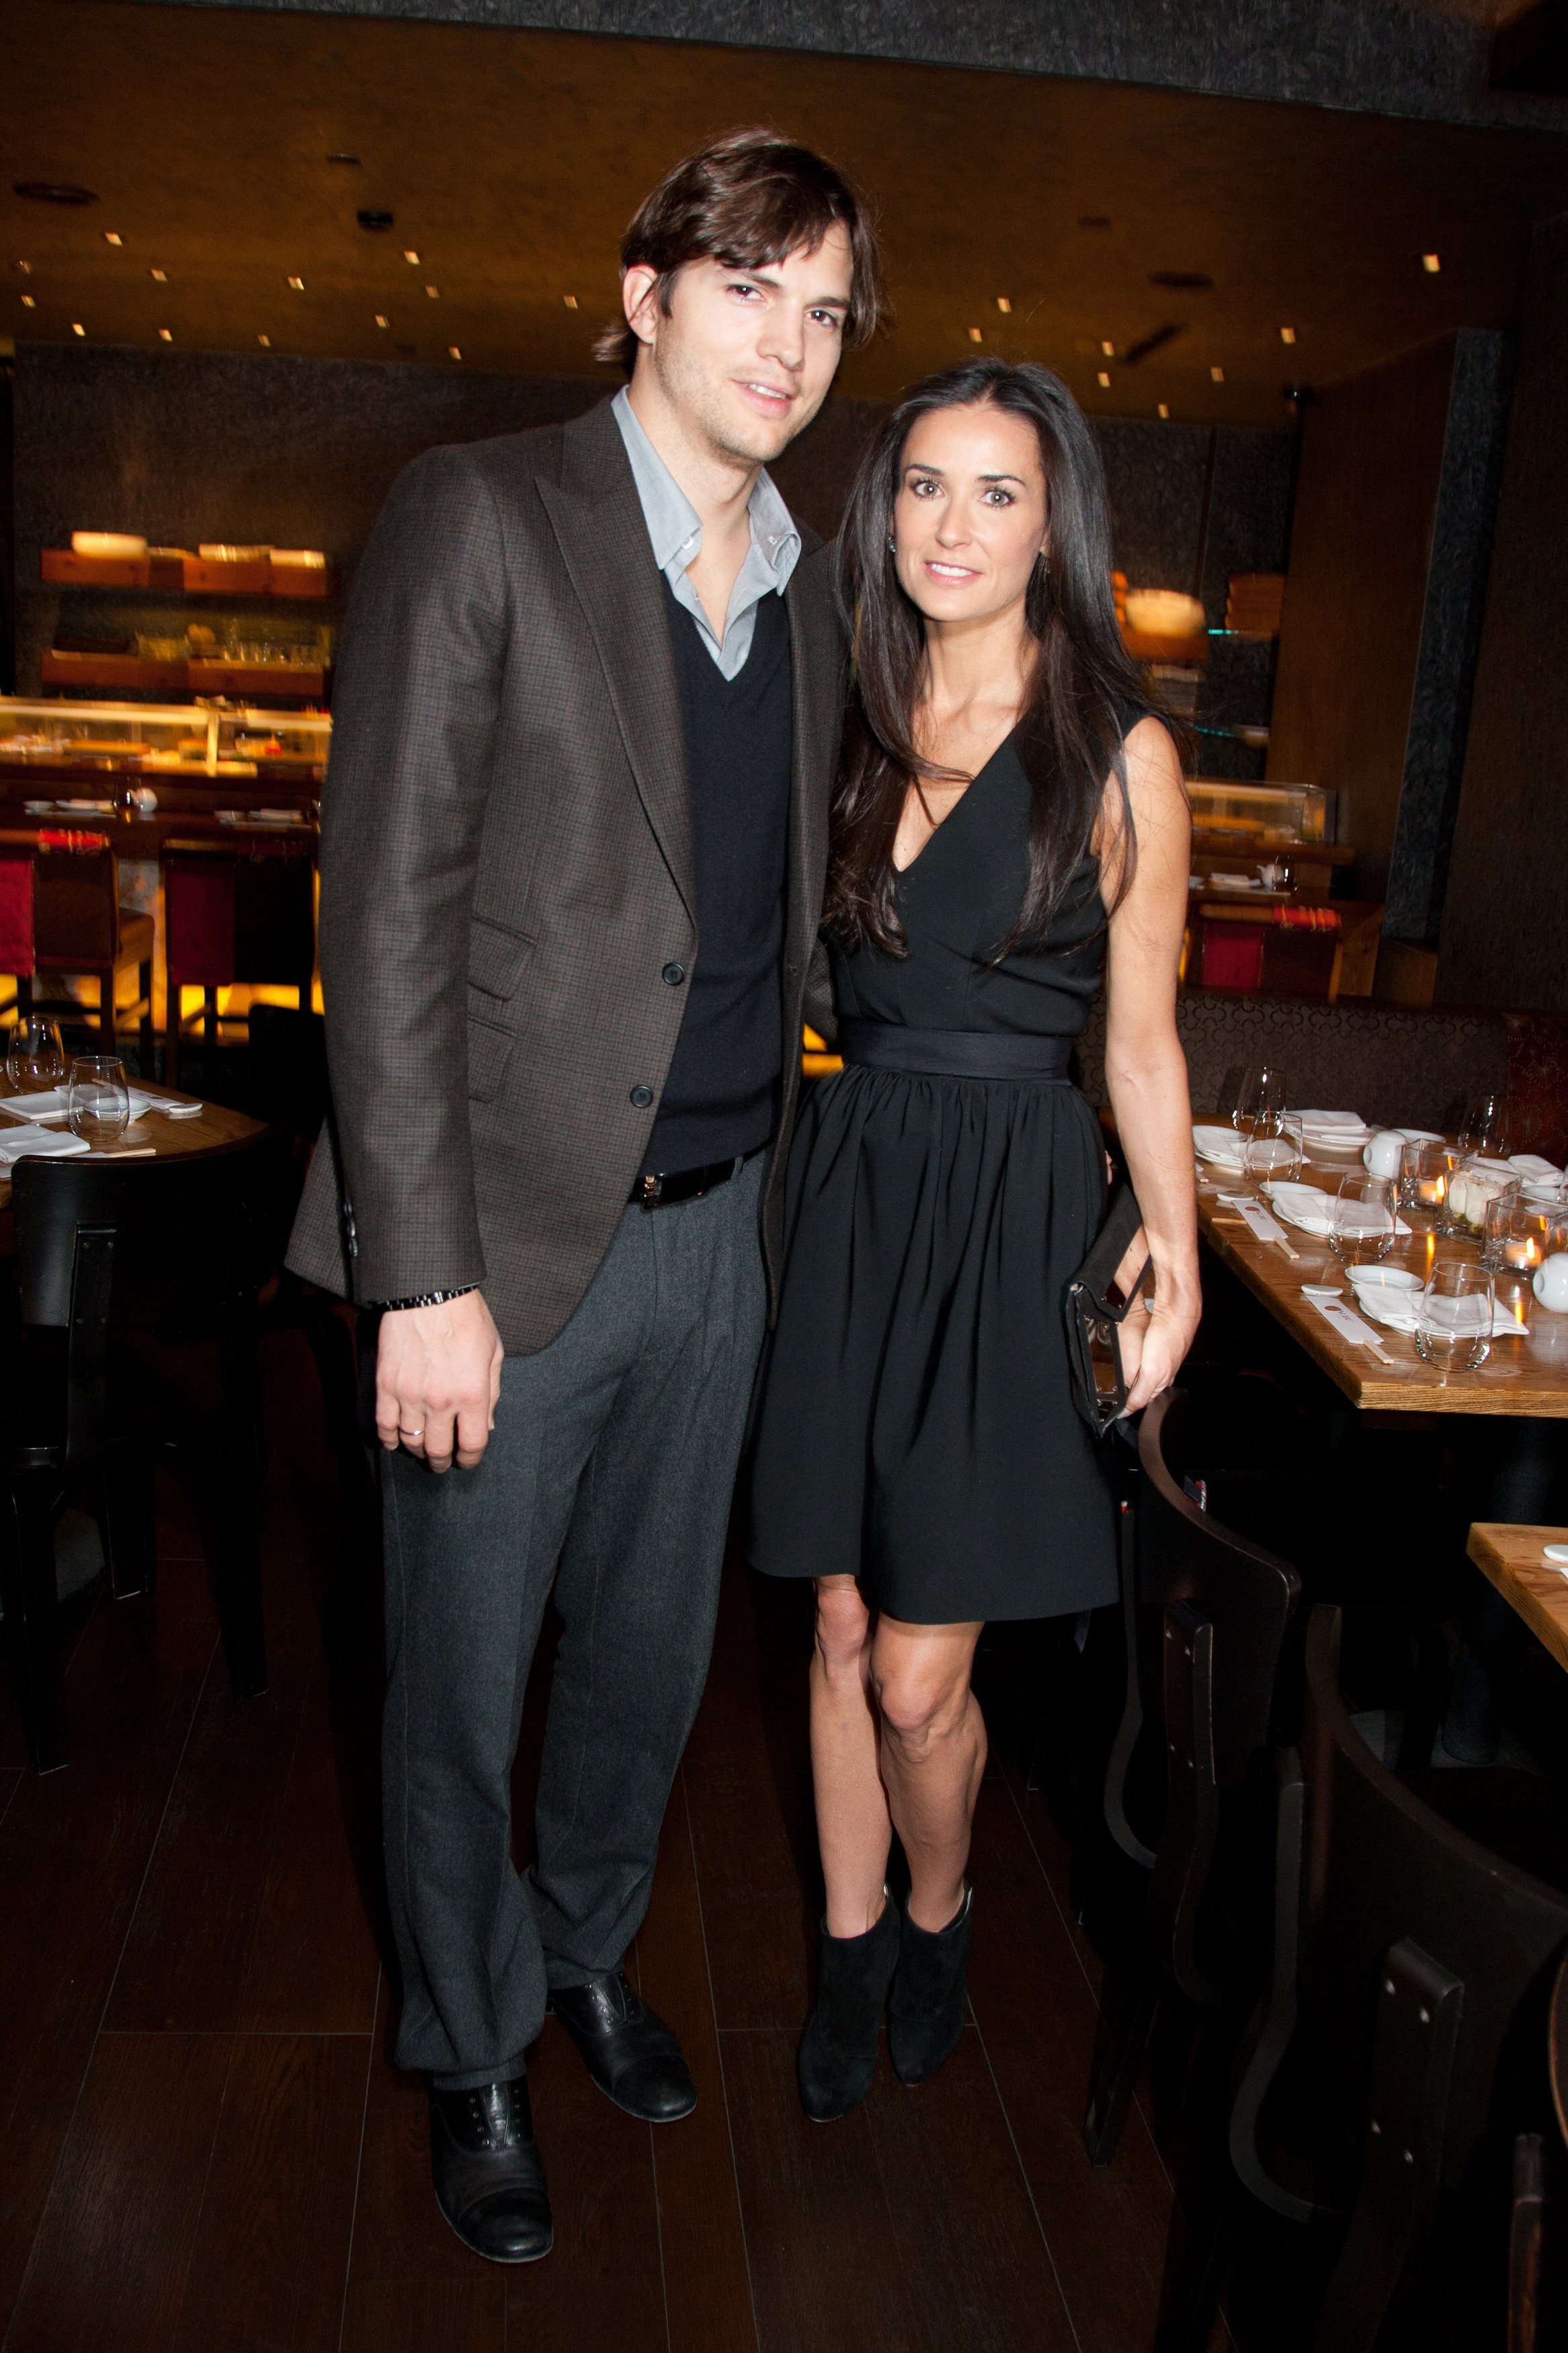 Ashton Kutcher and Demi Moore attend the Private Dinner after their Charity Gala in 2010. | Source: Getty Images